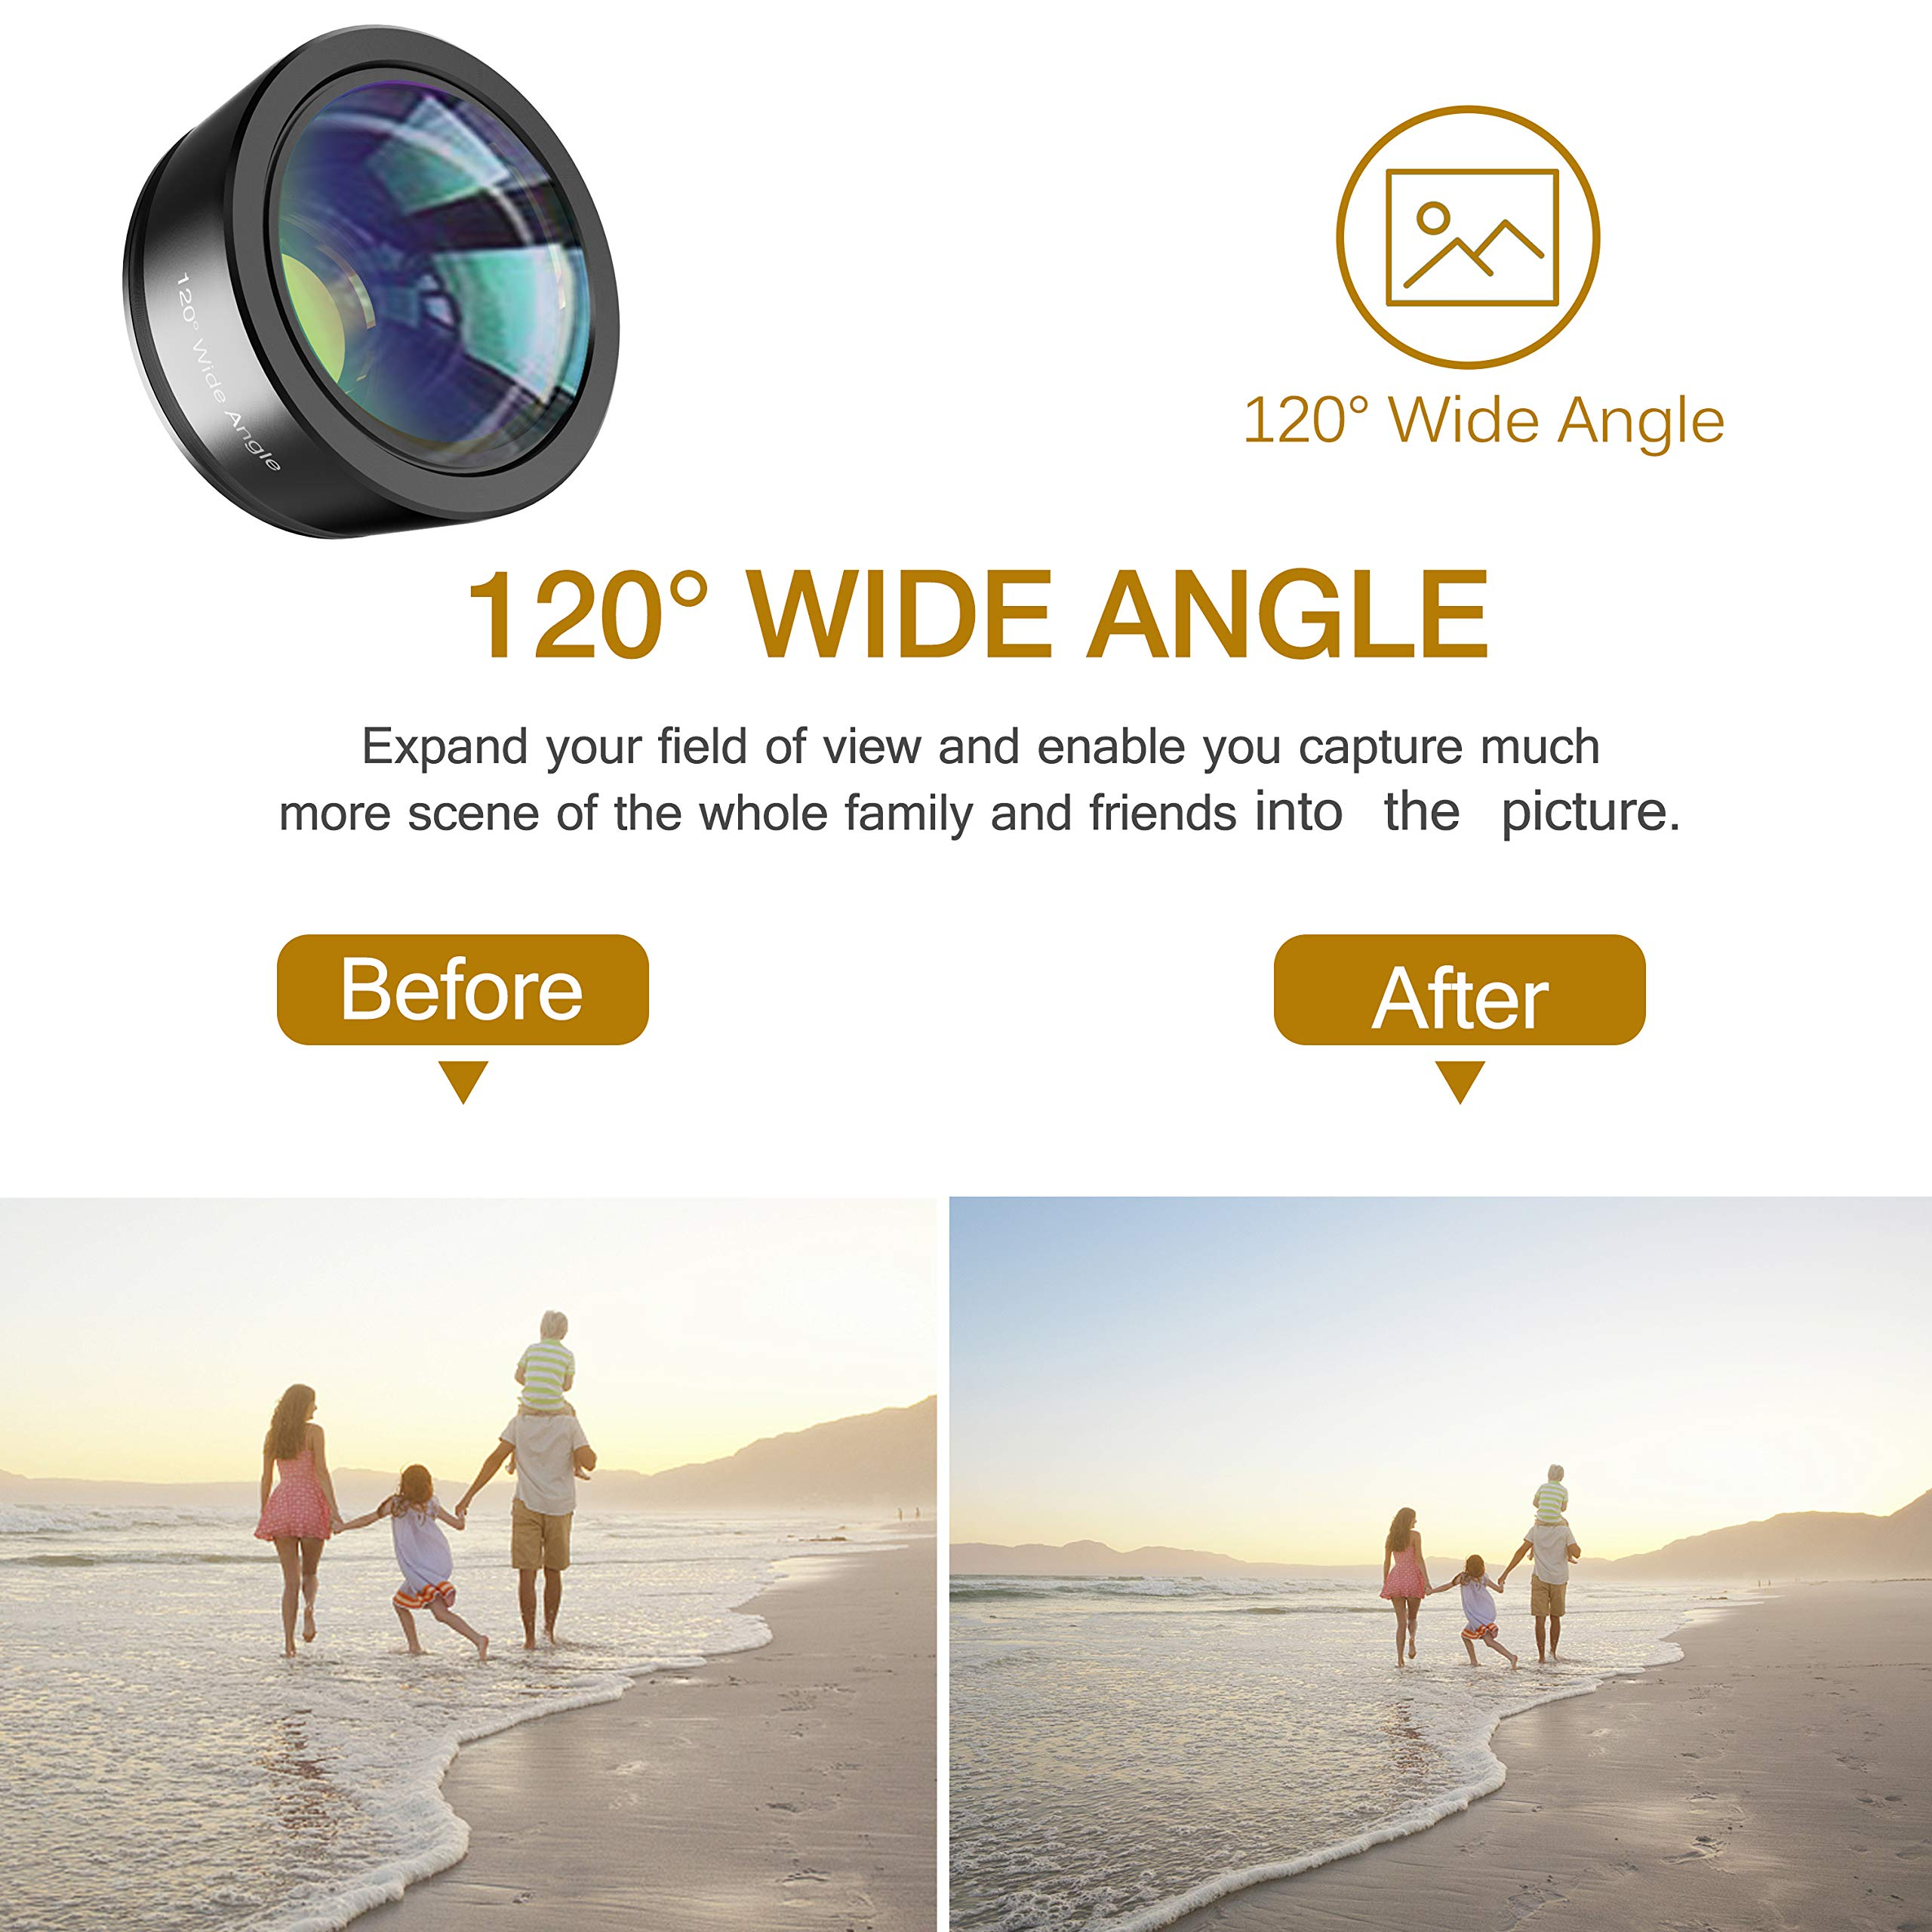 Phone Camera Lens,Upgraded 3 in 1 Phone Lens kit-198° Fisheye Lens + 20X Macro Lens + 120° Wide Angle Lens,Clip on Cell Phone Lens Kits Compatible with iPhone,iPad,Most Android Phones and Smartphones by LEKNES (Image #4)